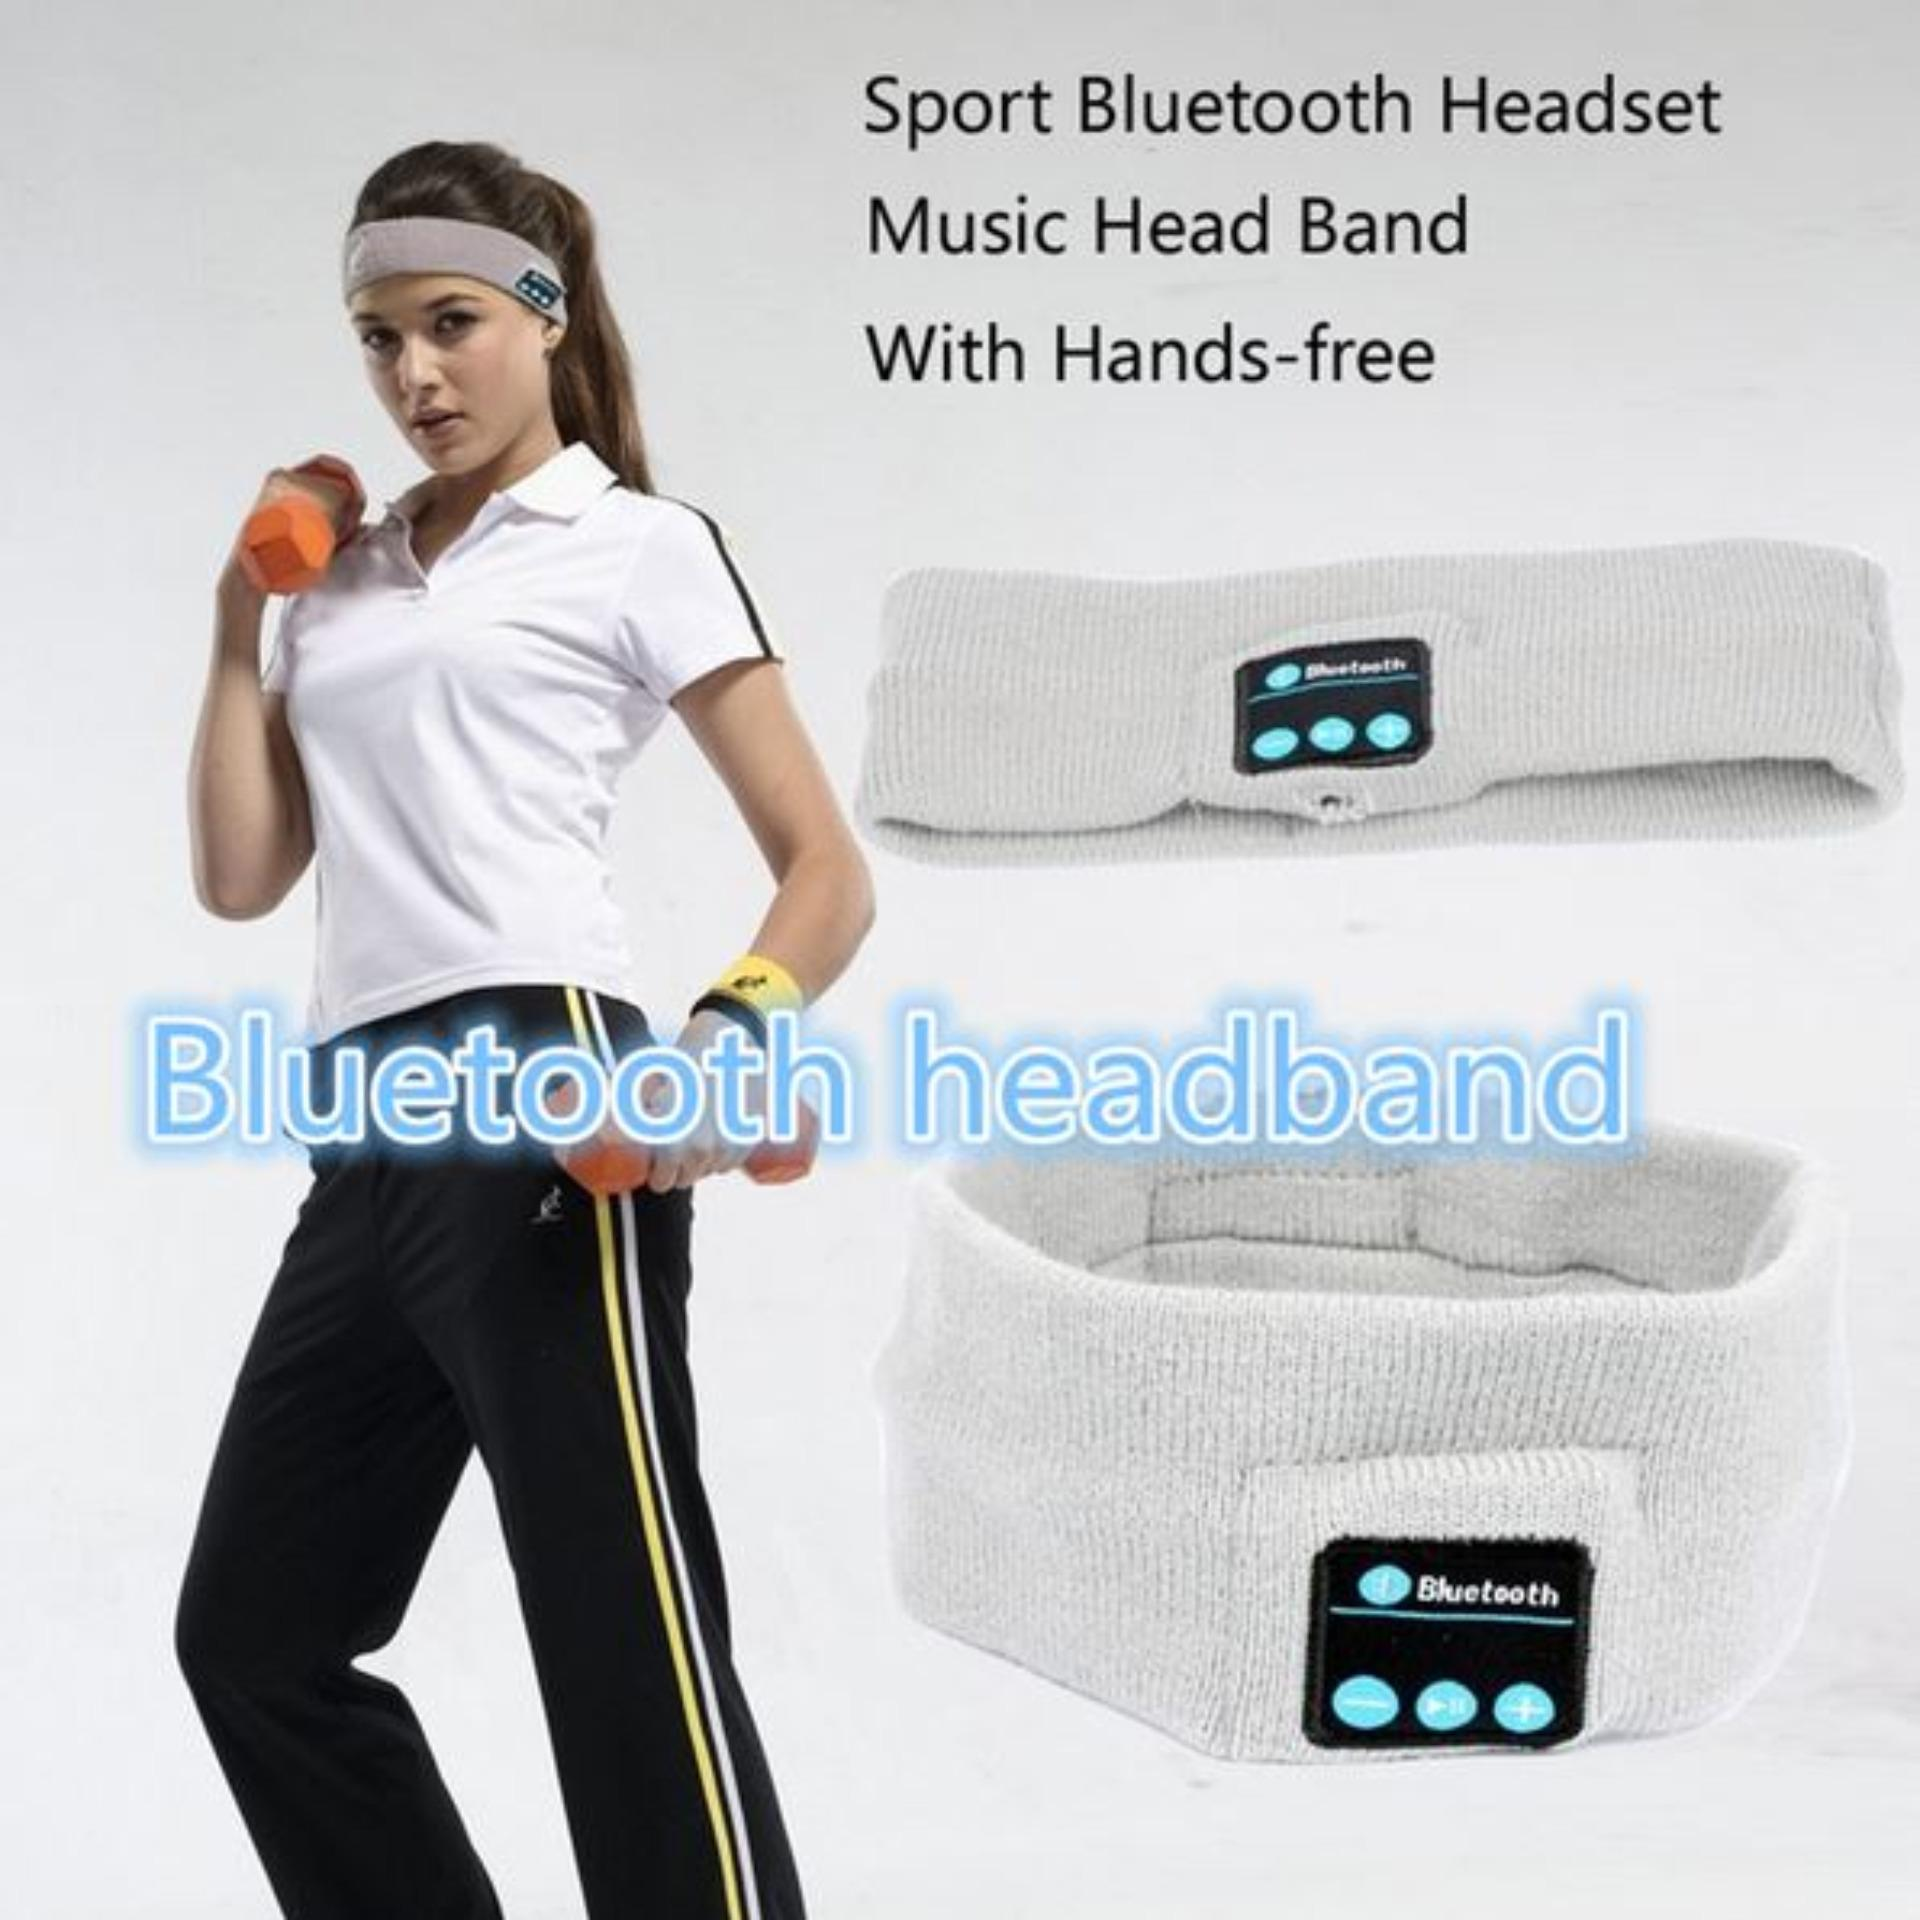 Jual Beli Best Hat Headband Olahraga Musik Stereo Bluetooth Earphone Built In Microphone Earphone Topi Wireless Bluetooth Headband Di Banten